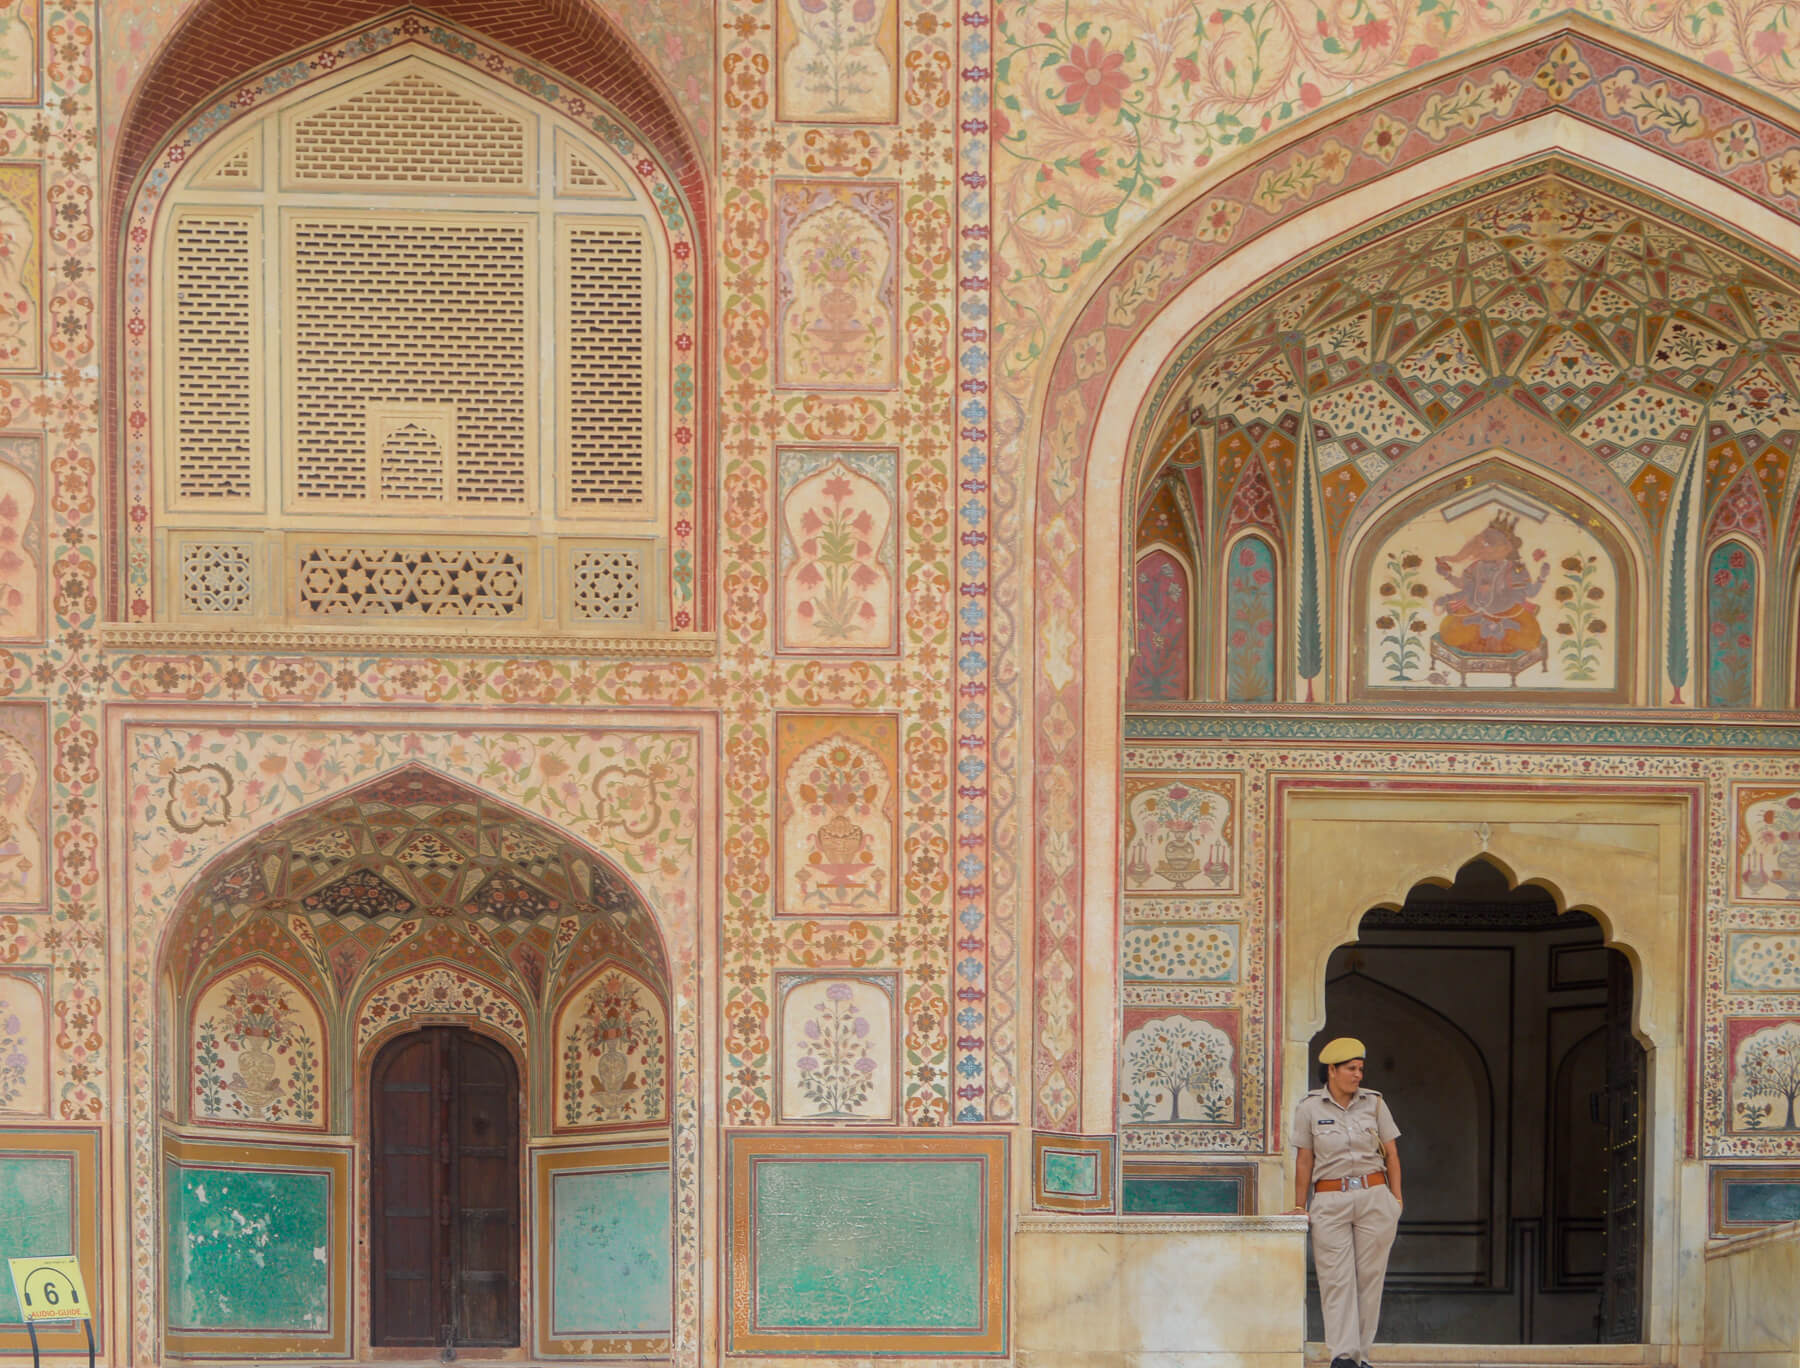 Lady standing infront of amazing palace front in India